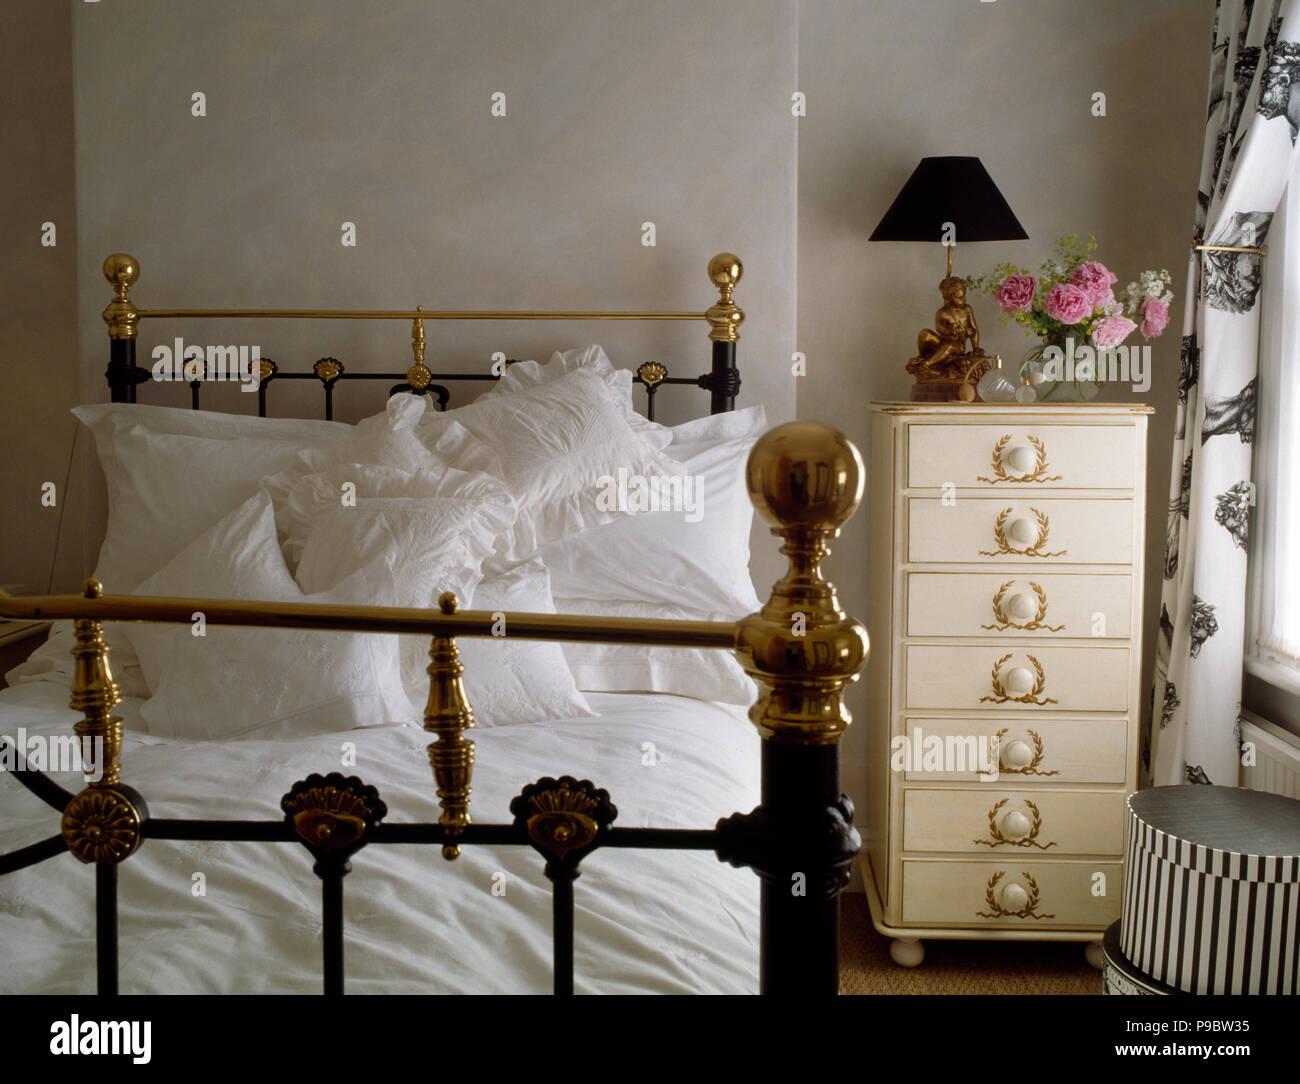 Antique Brass Bed And Narrow Chest Of Drawers In Eighties Bedroom